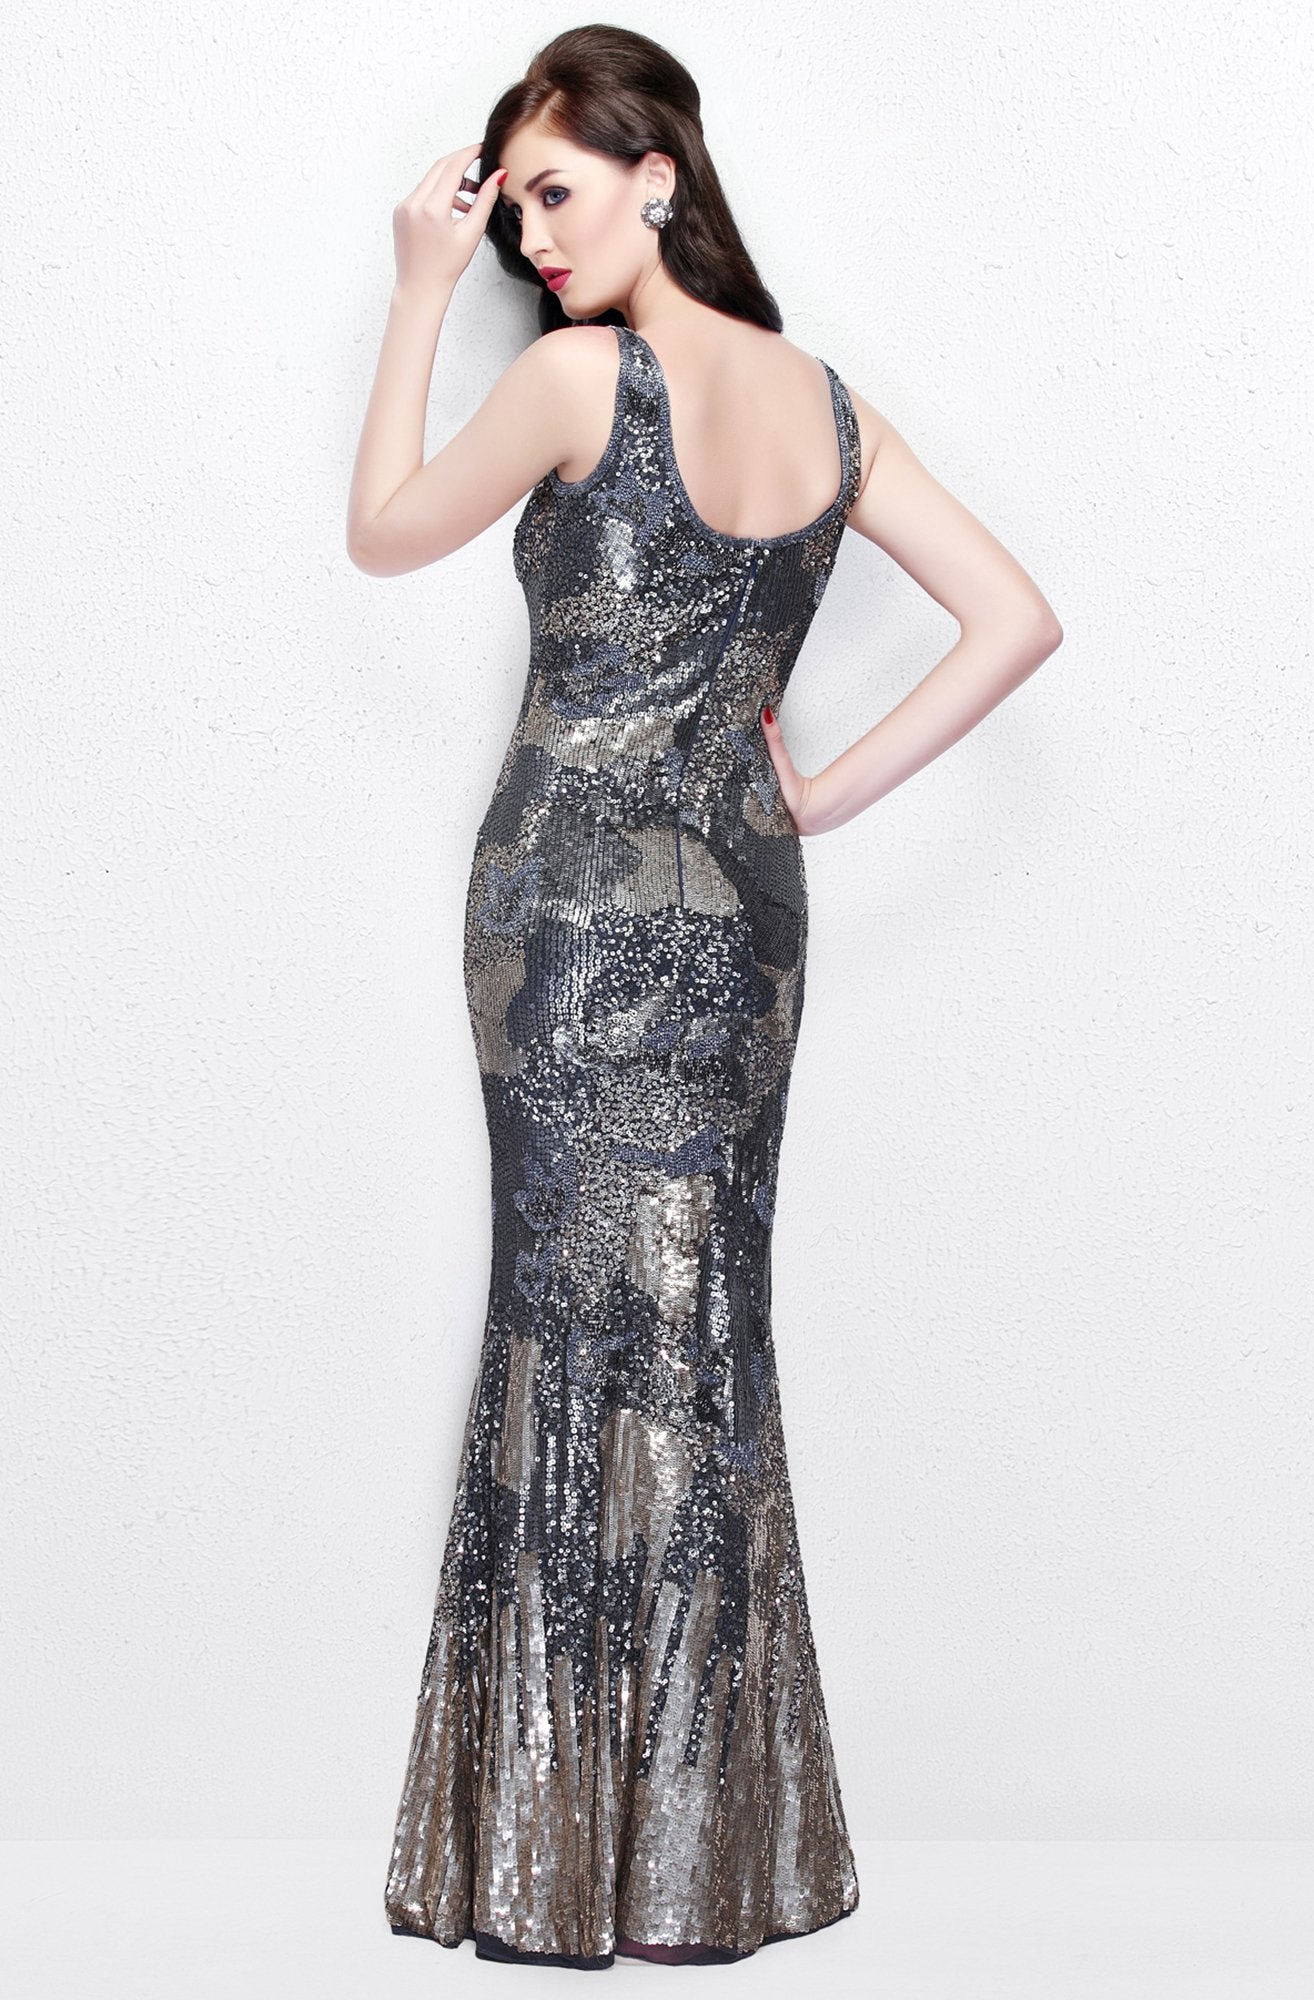 Primavera Couture - Sequined V-Neck Long Sheath Dress 1702 in Neutral and Multi-Color